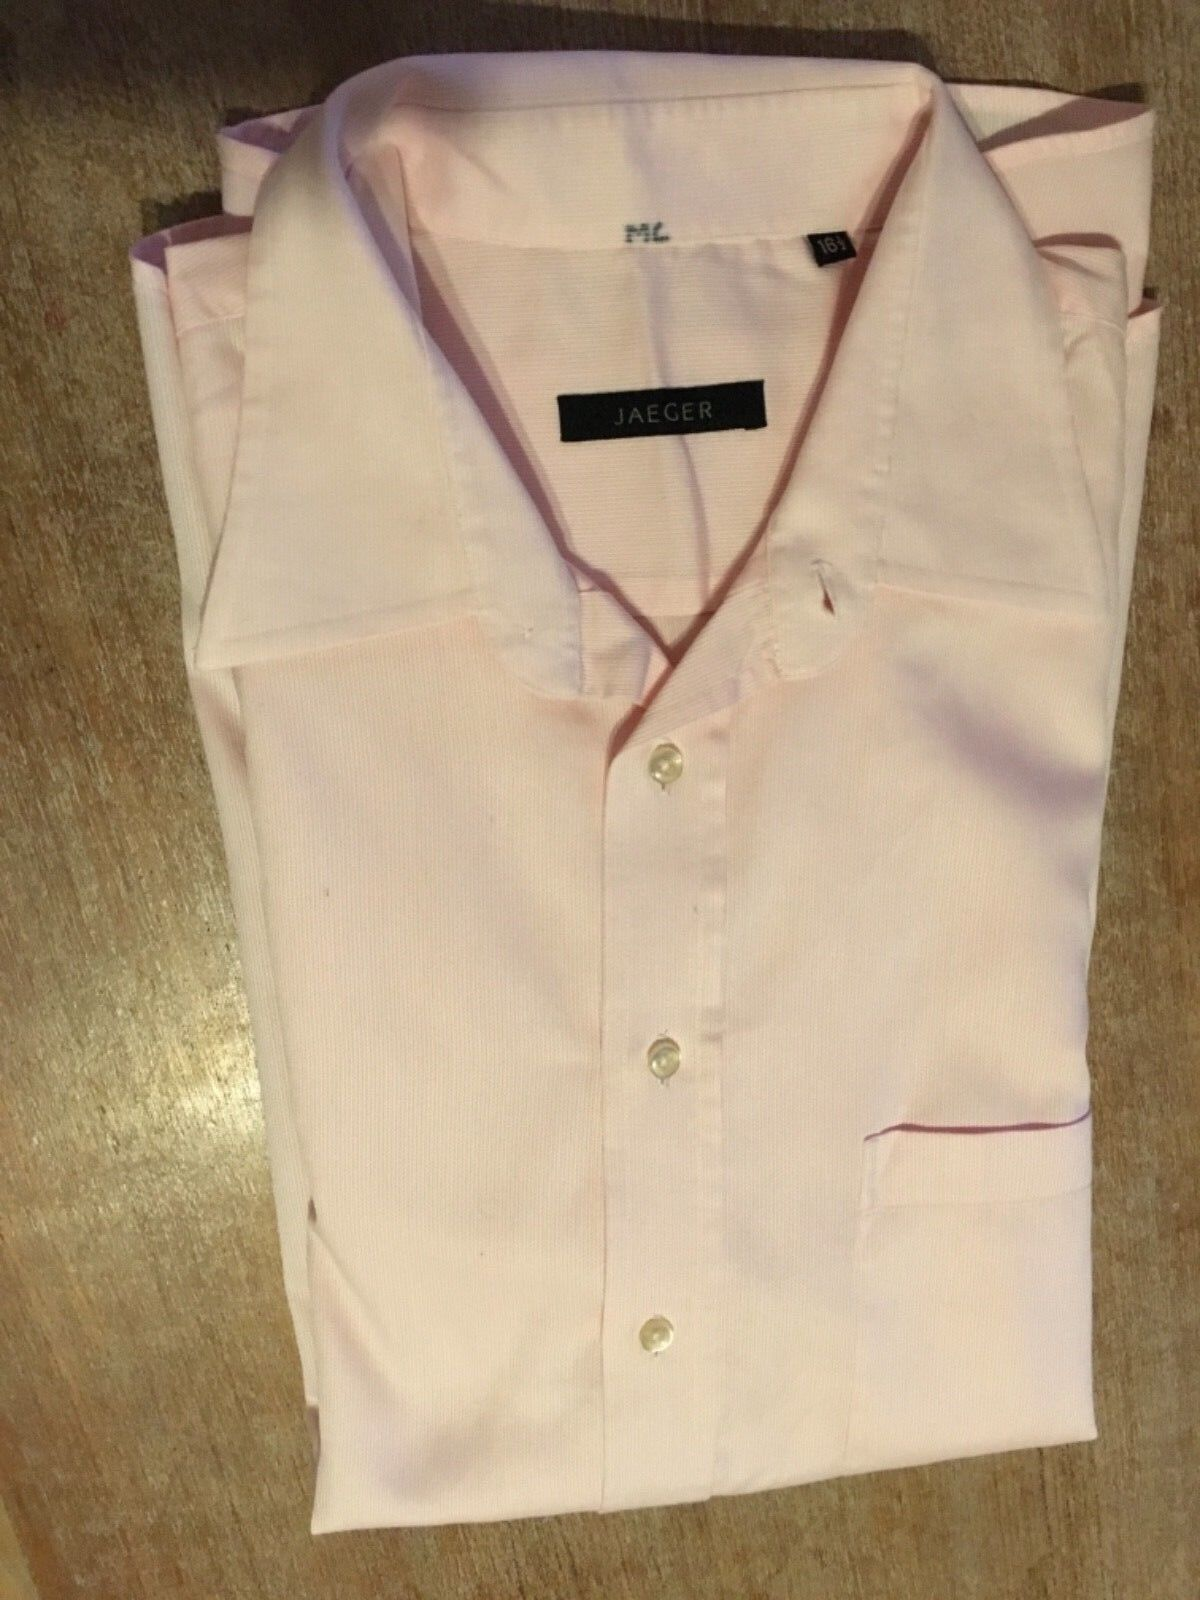 Mens Long Sleeved Shirt, Jaeger, Pale Pink, Classic Style, 16.5inch